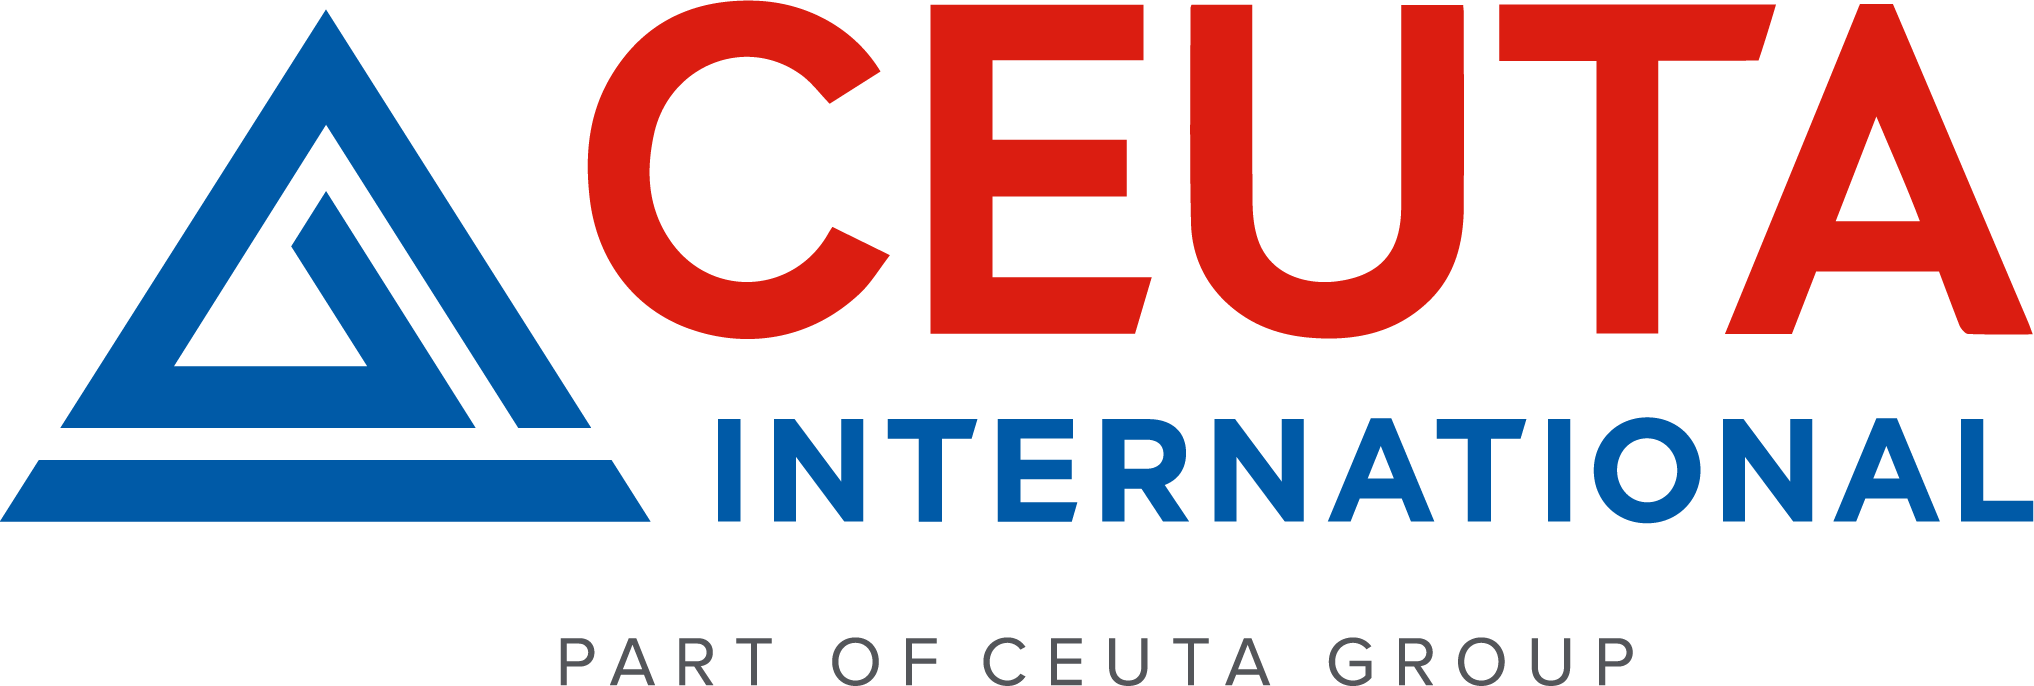 Ceuta International logo